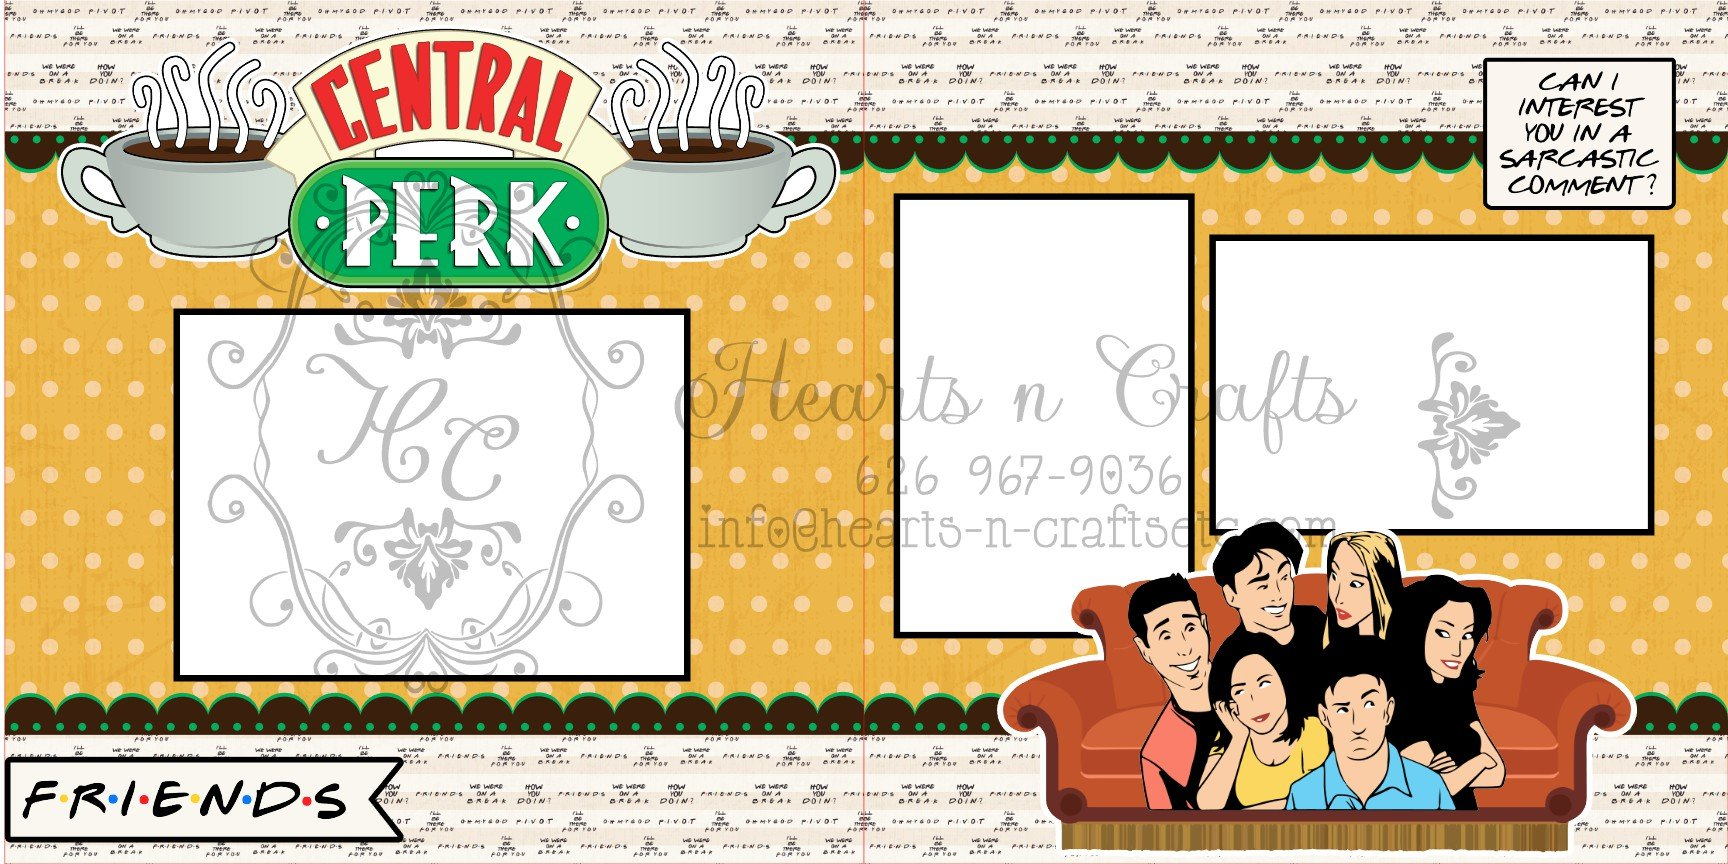 Friends-Central Perk 2pg Layout